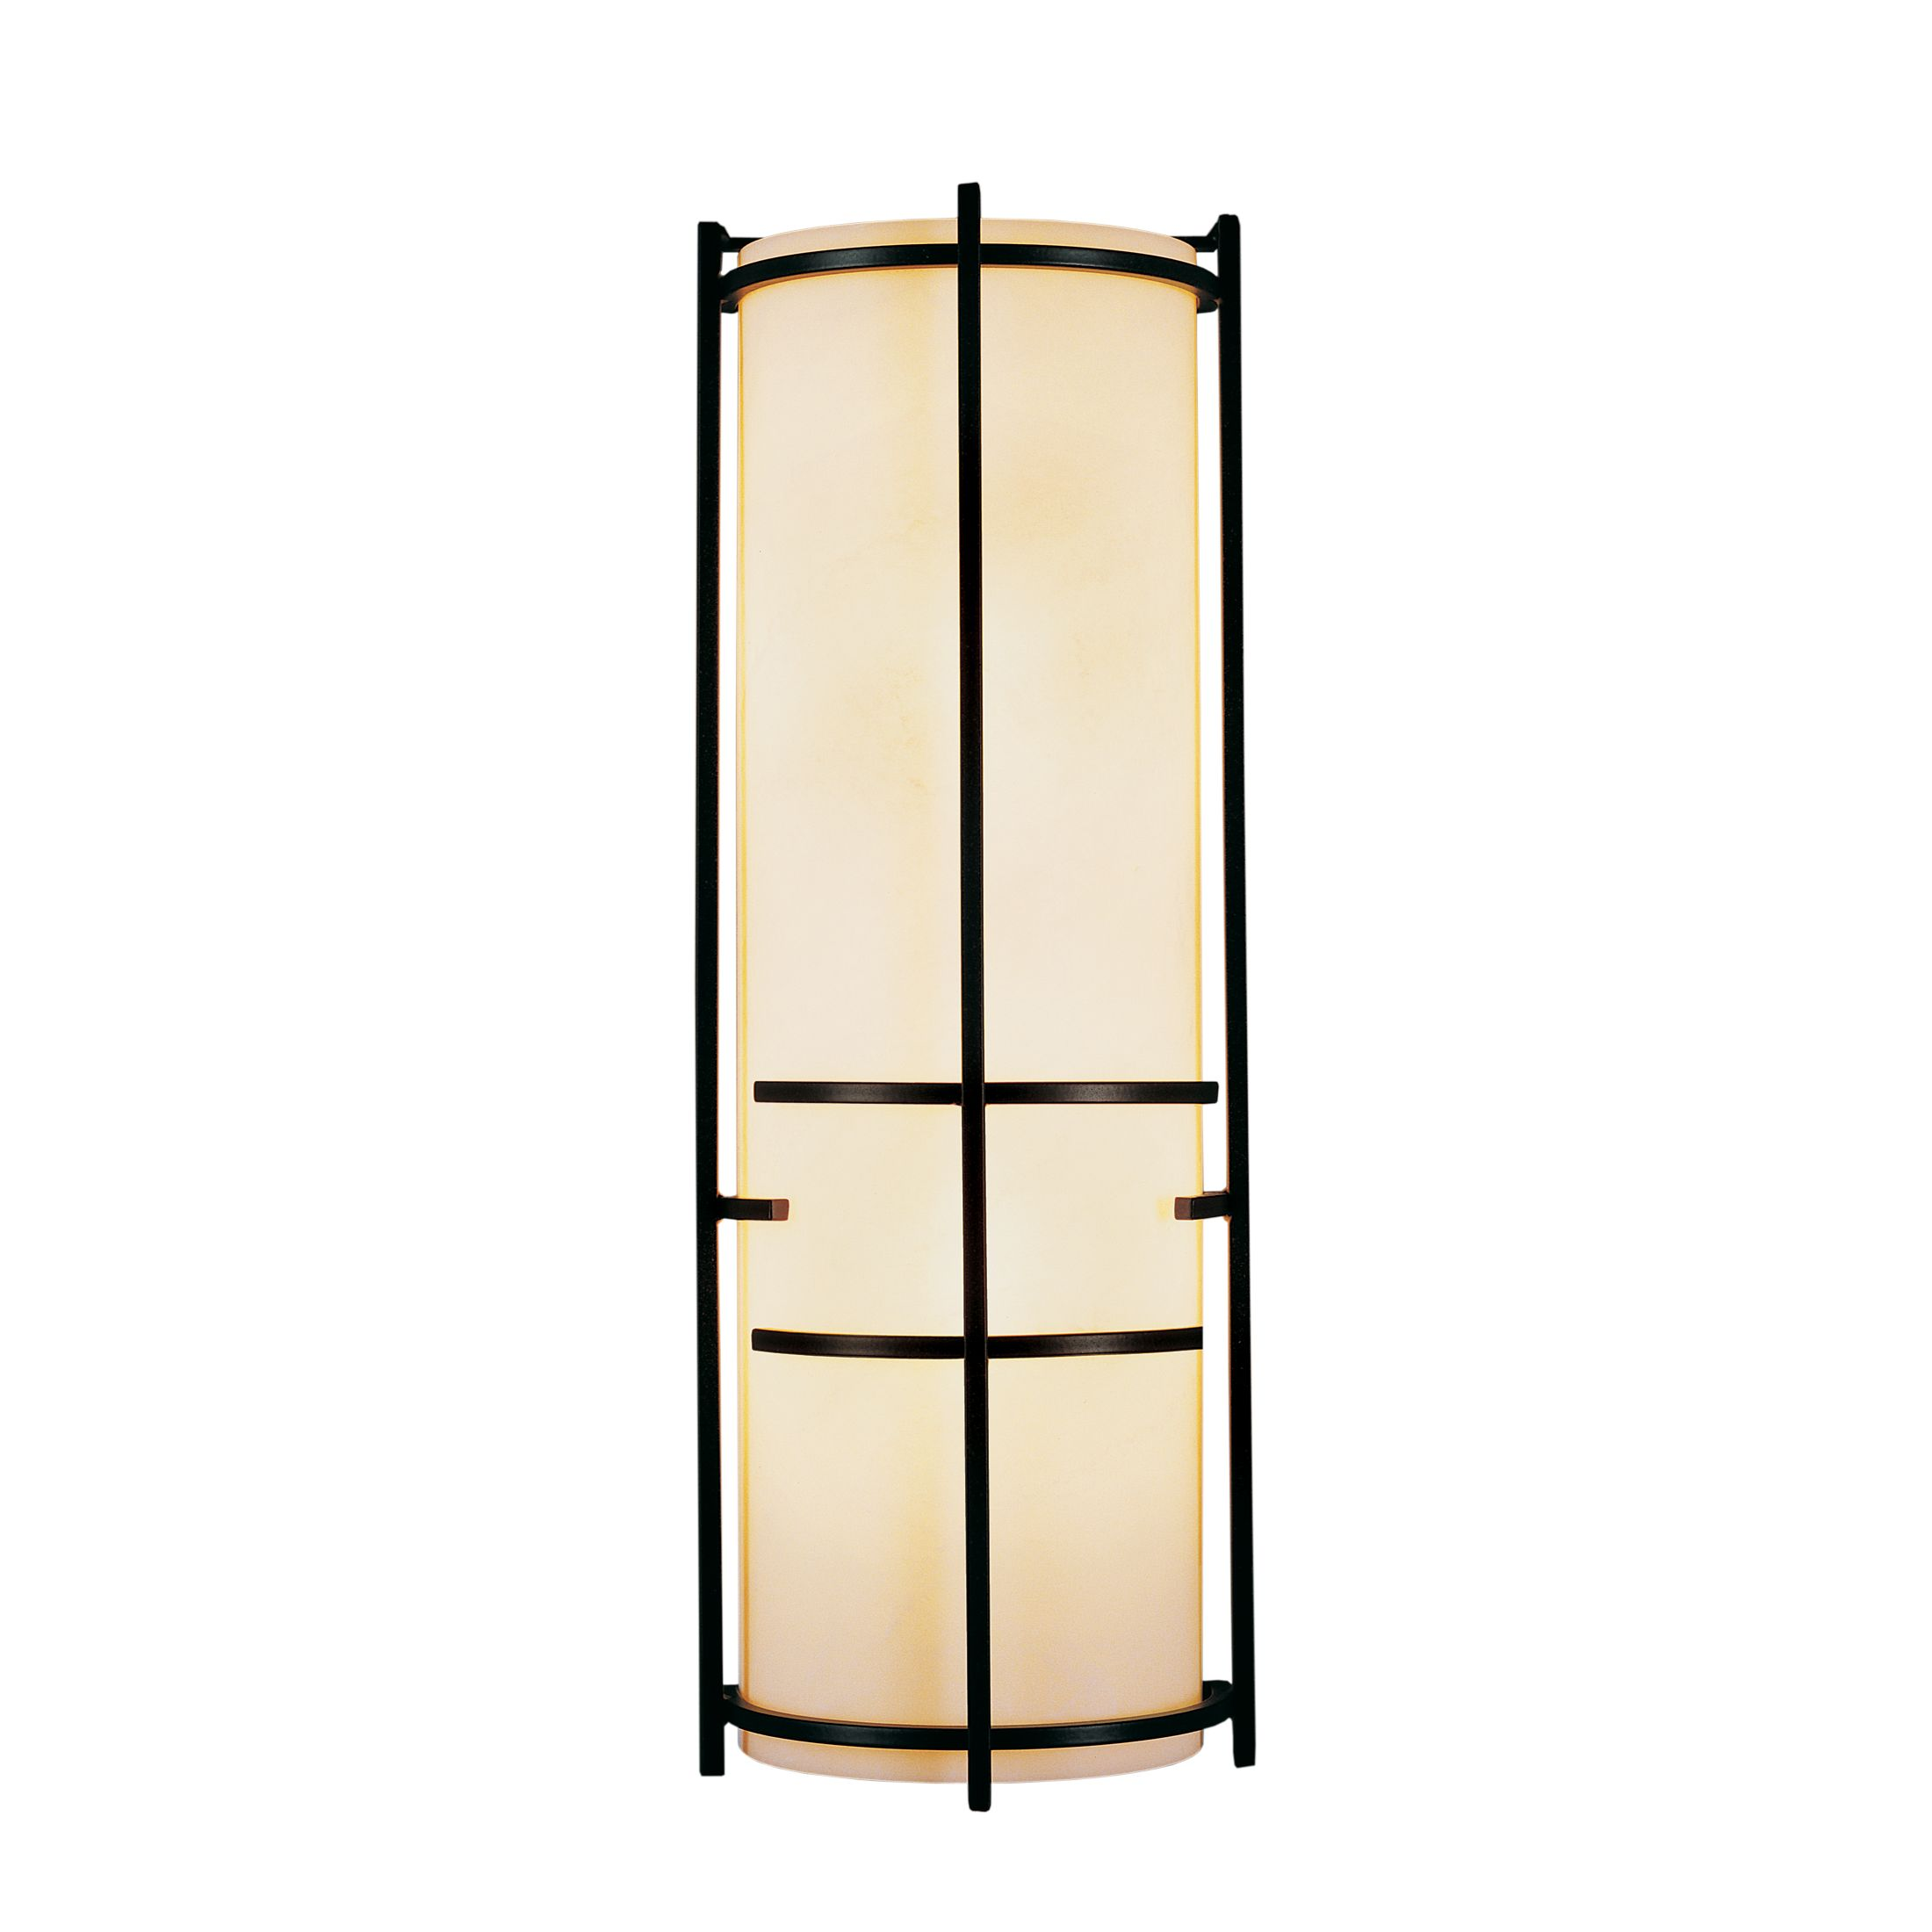 Hubbardton Forge Flora Sconce: Banded Wall Torch Sconce